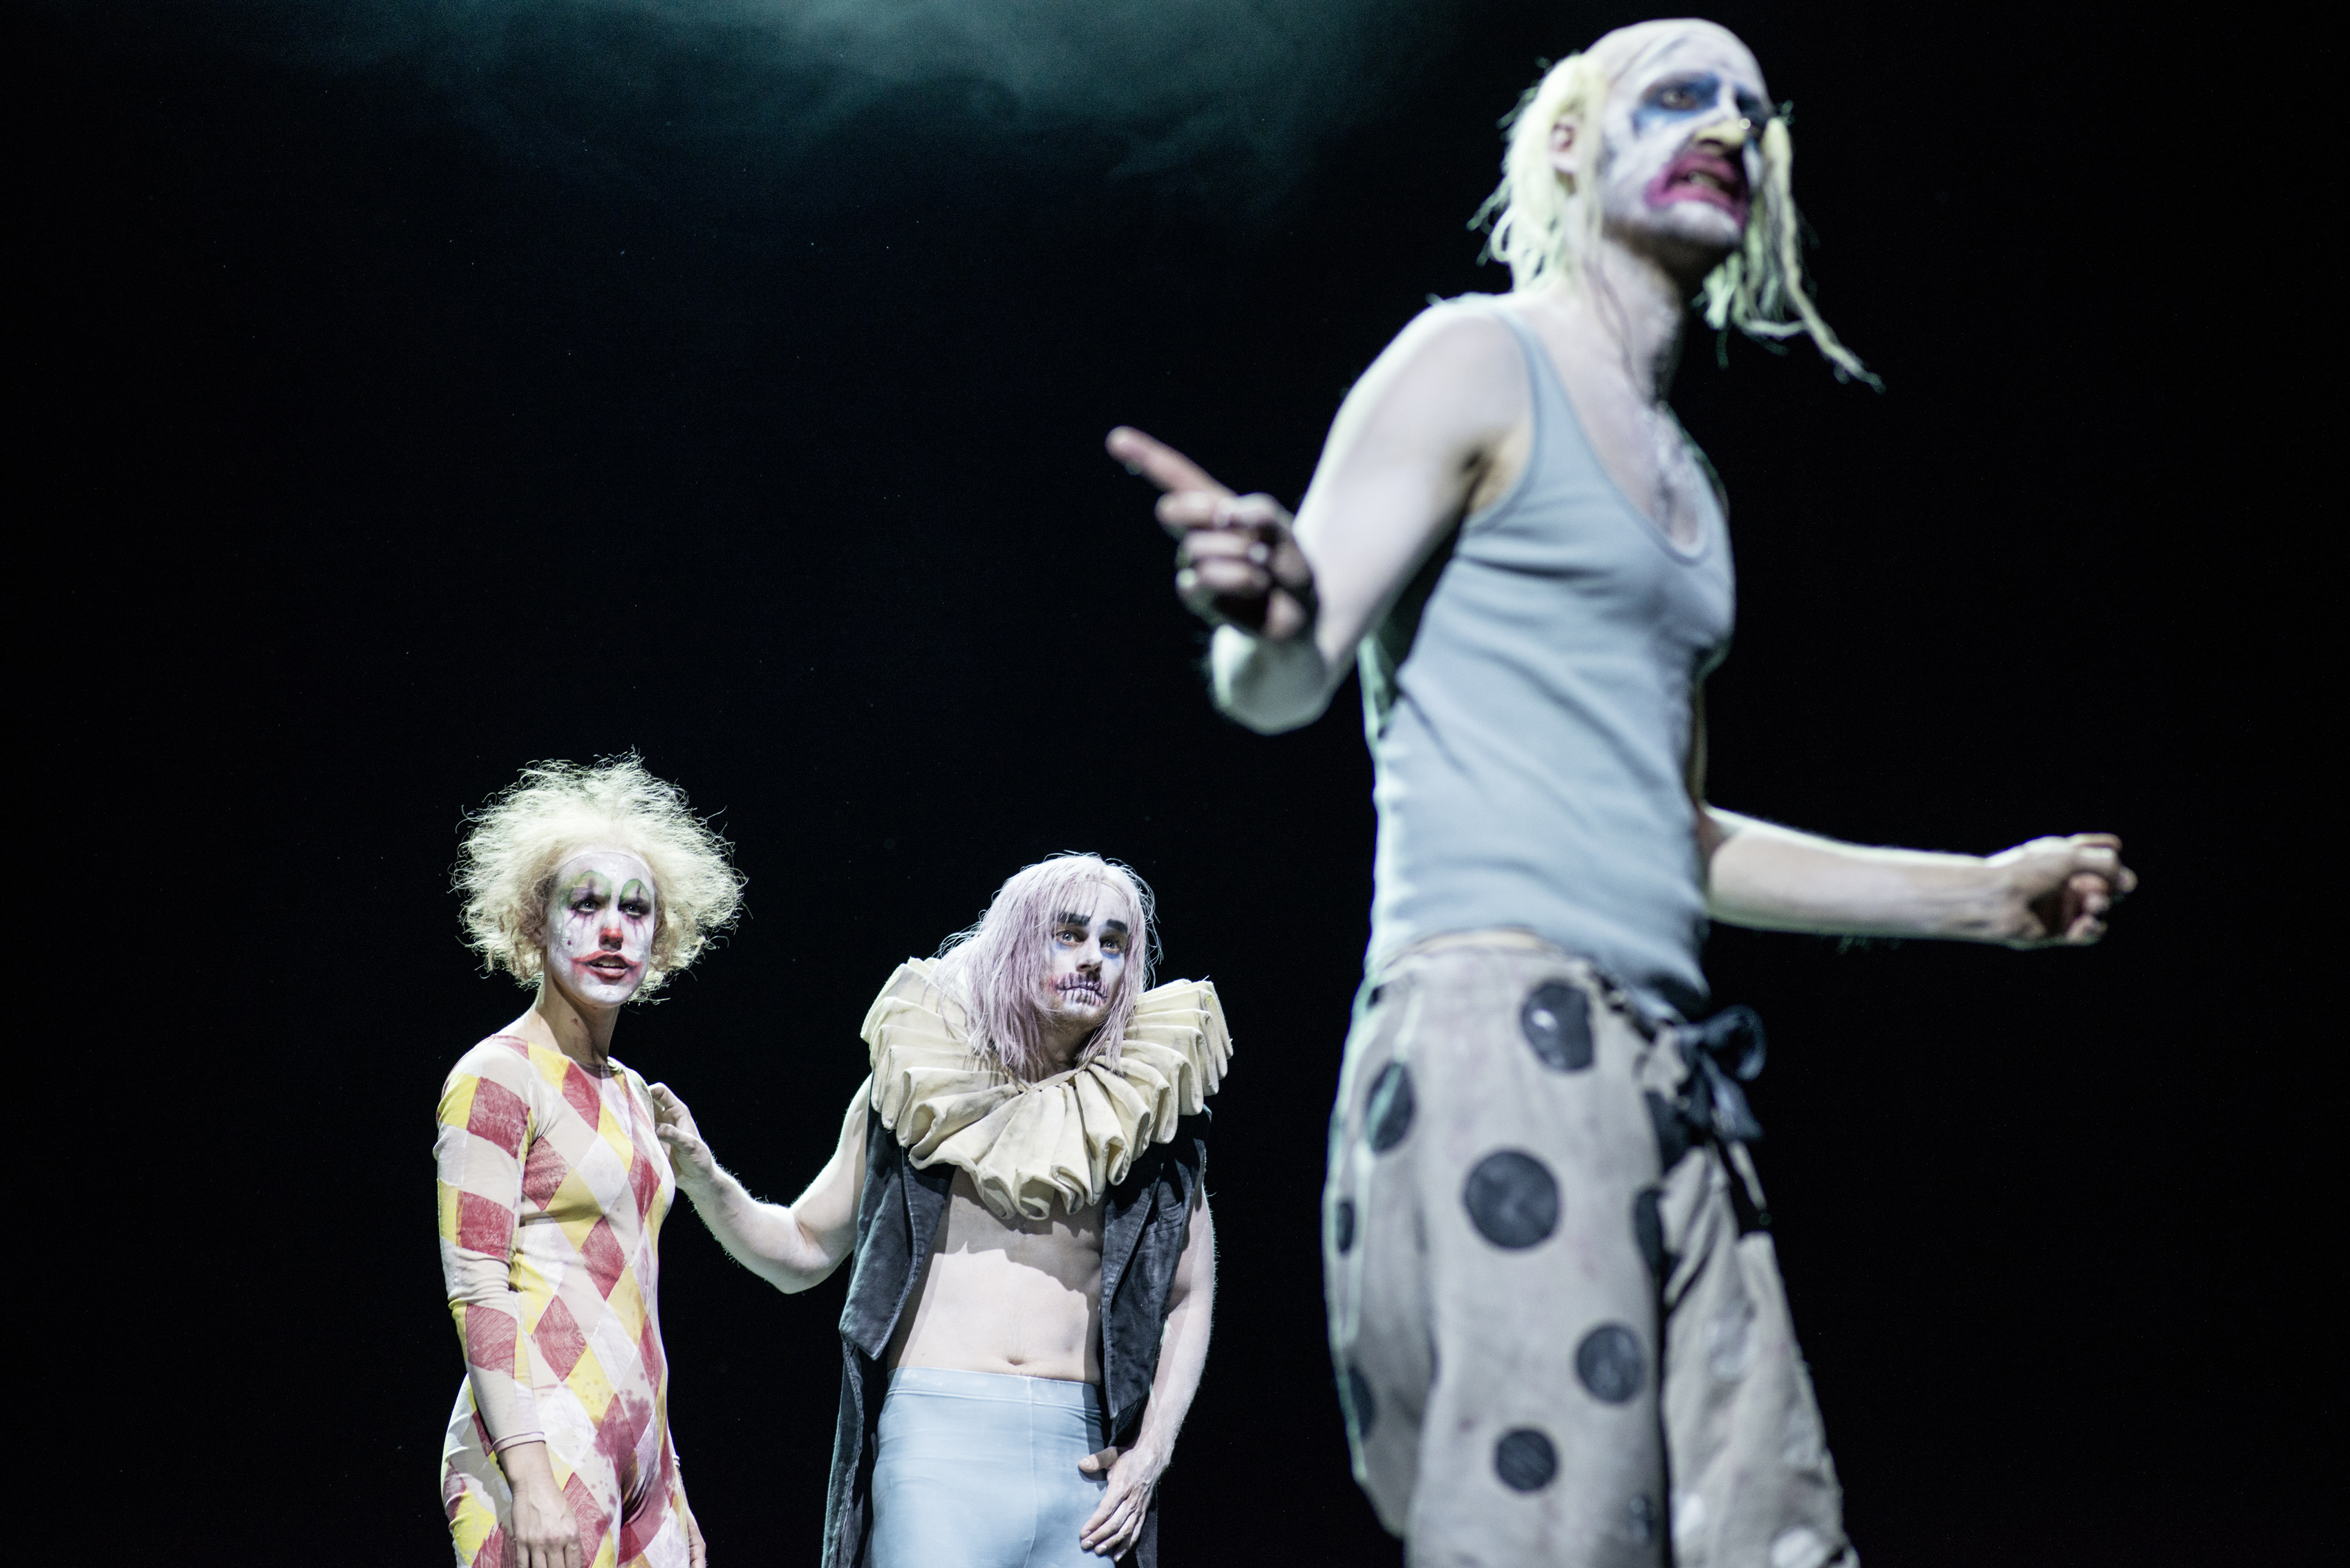 CALIGULA/Berliner Ensemble